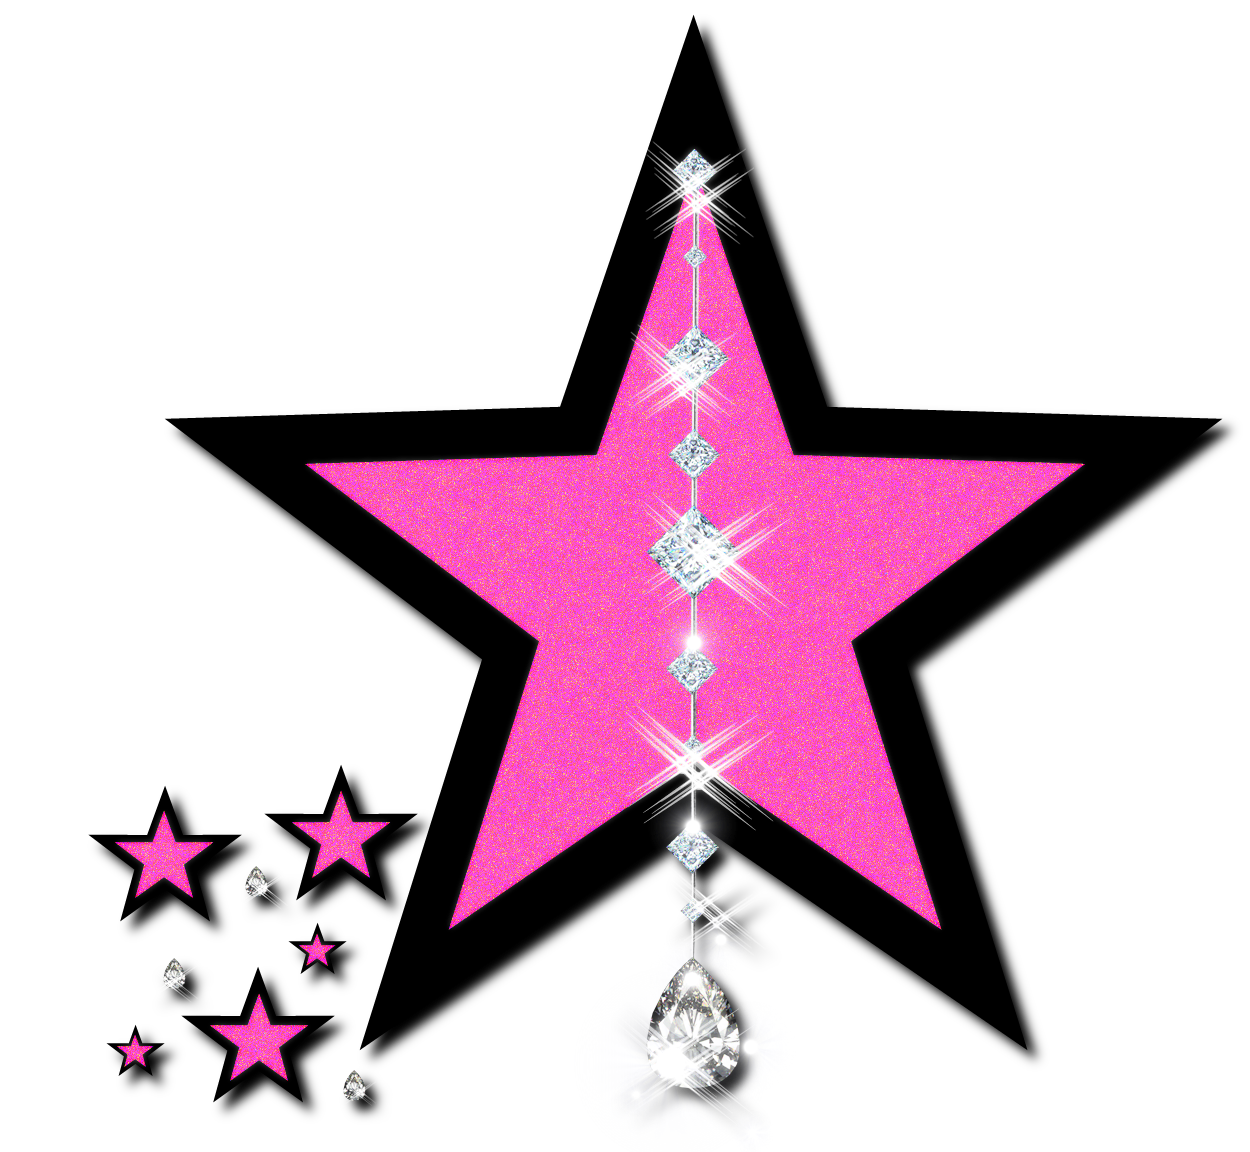 all star clip art clipart best star and sky art ill pinterest rh pinterest com Black Star Clip Art Baby Girl Bottle Clip Art